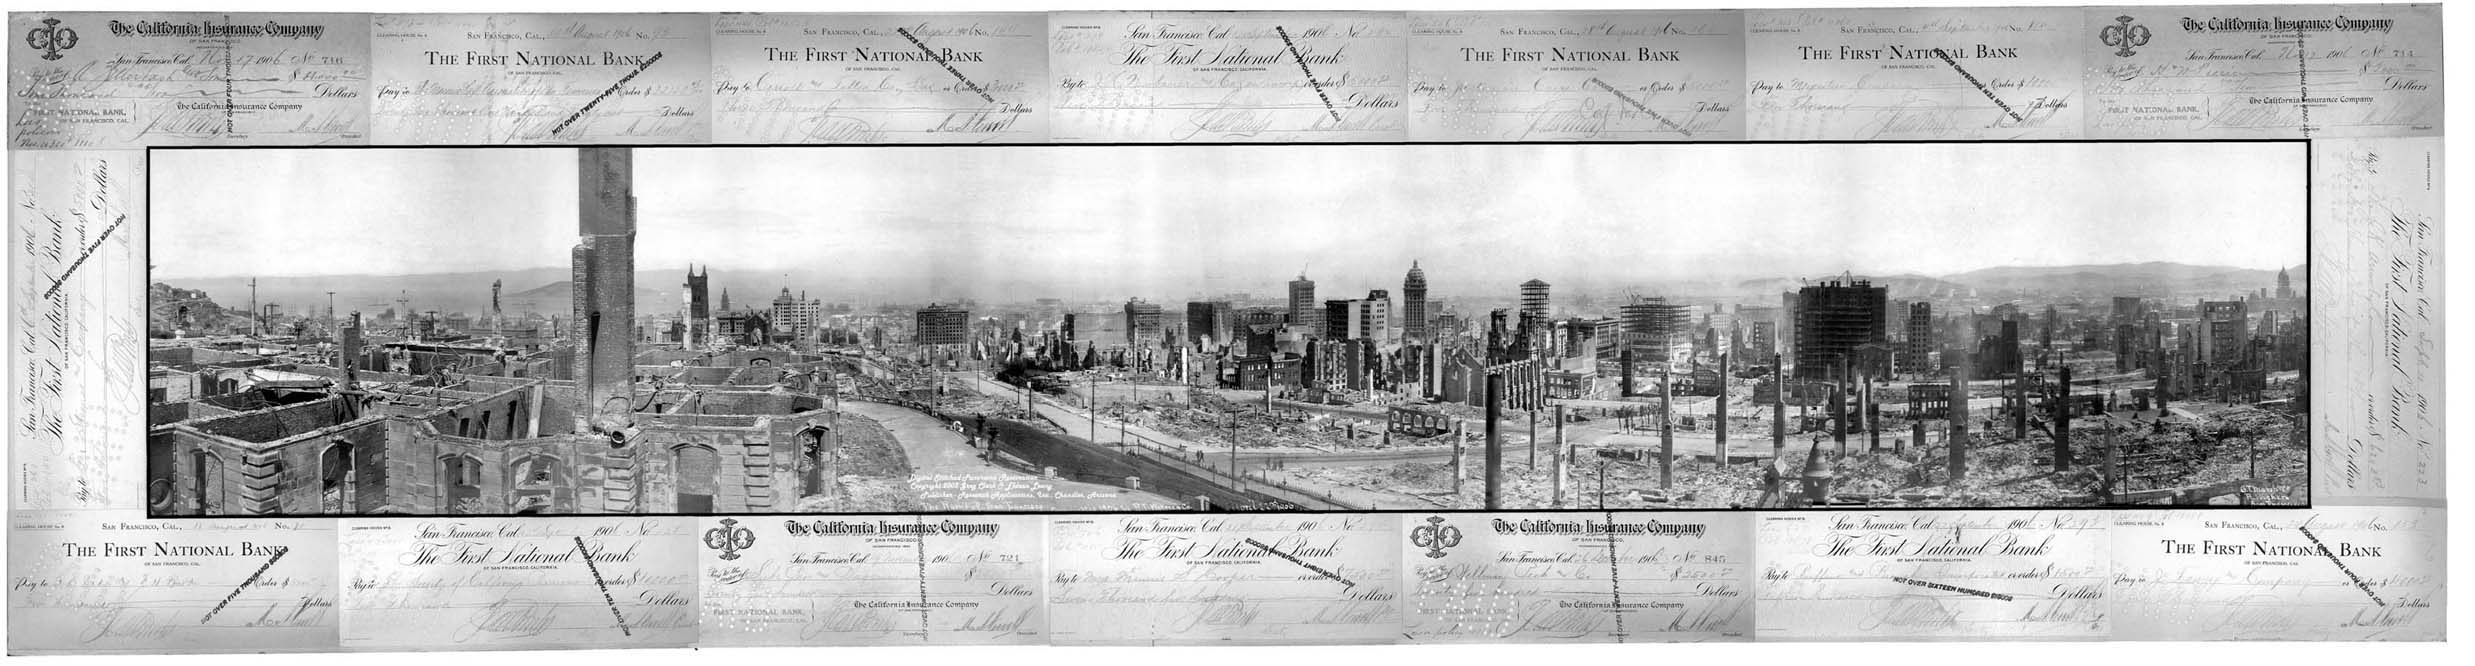 san franciscos 1906 earthquake essay The 1906 earthquake of san francisco is also known as the great san francisco  earthquake although, more than a century has gone since it.